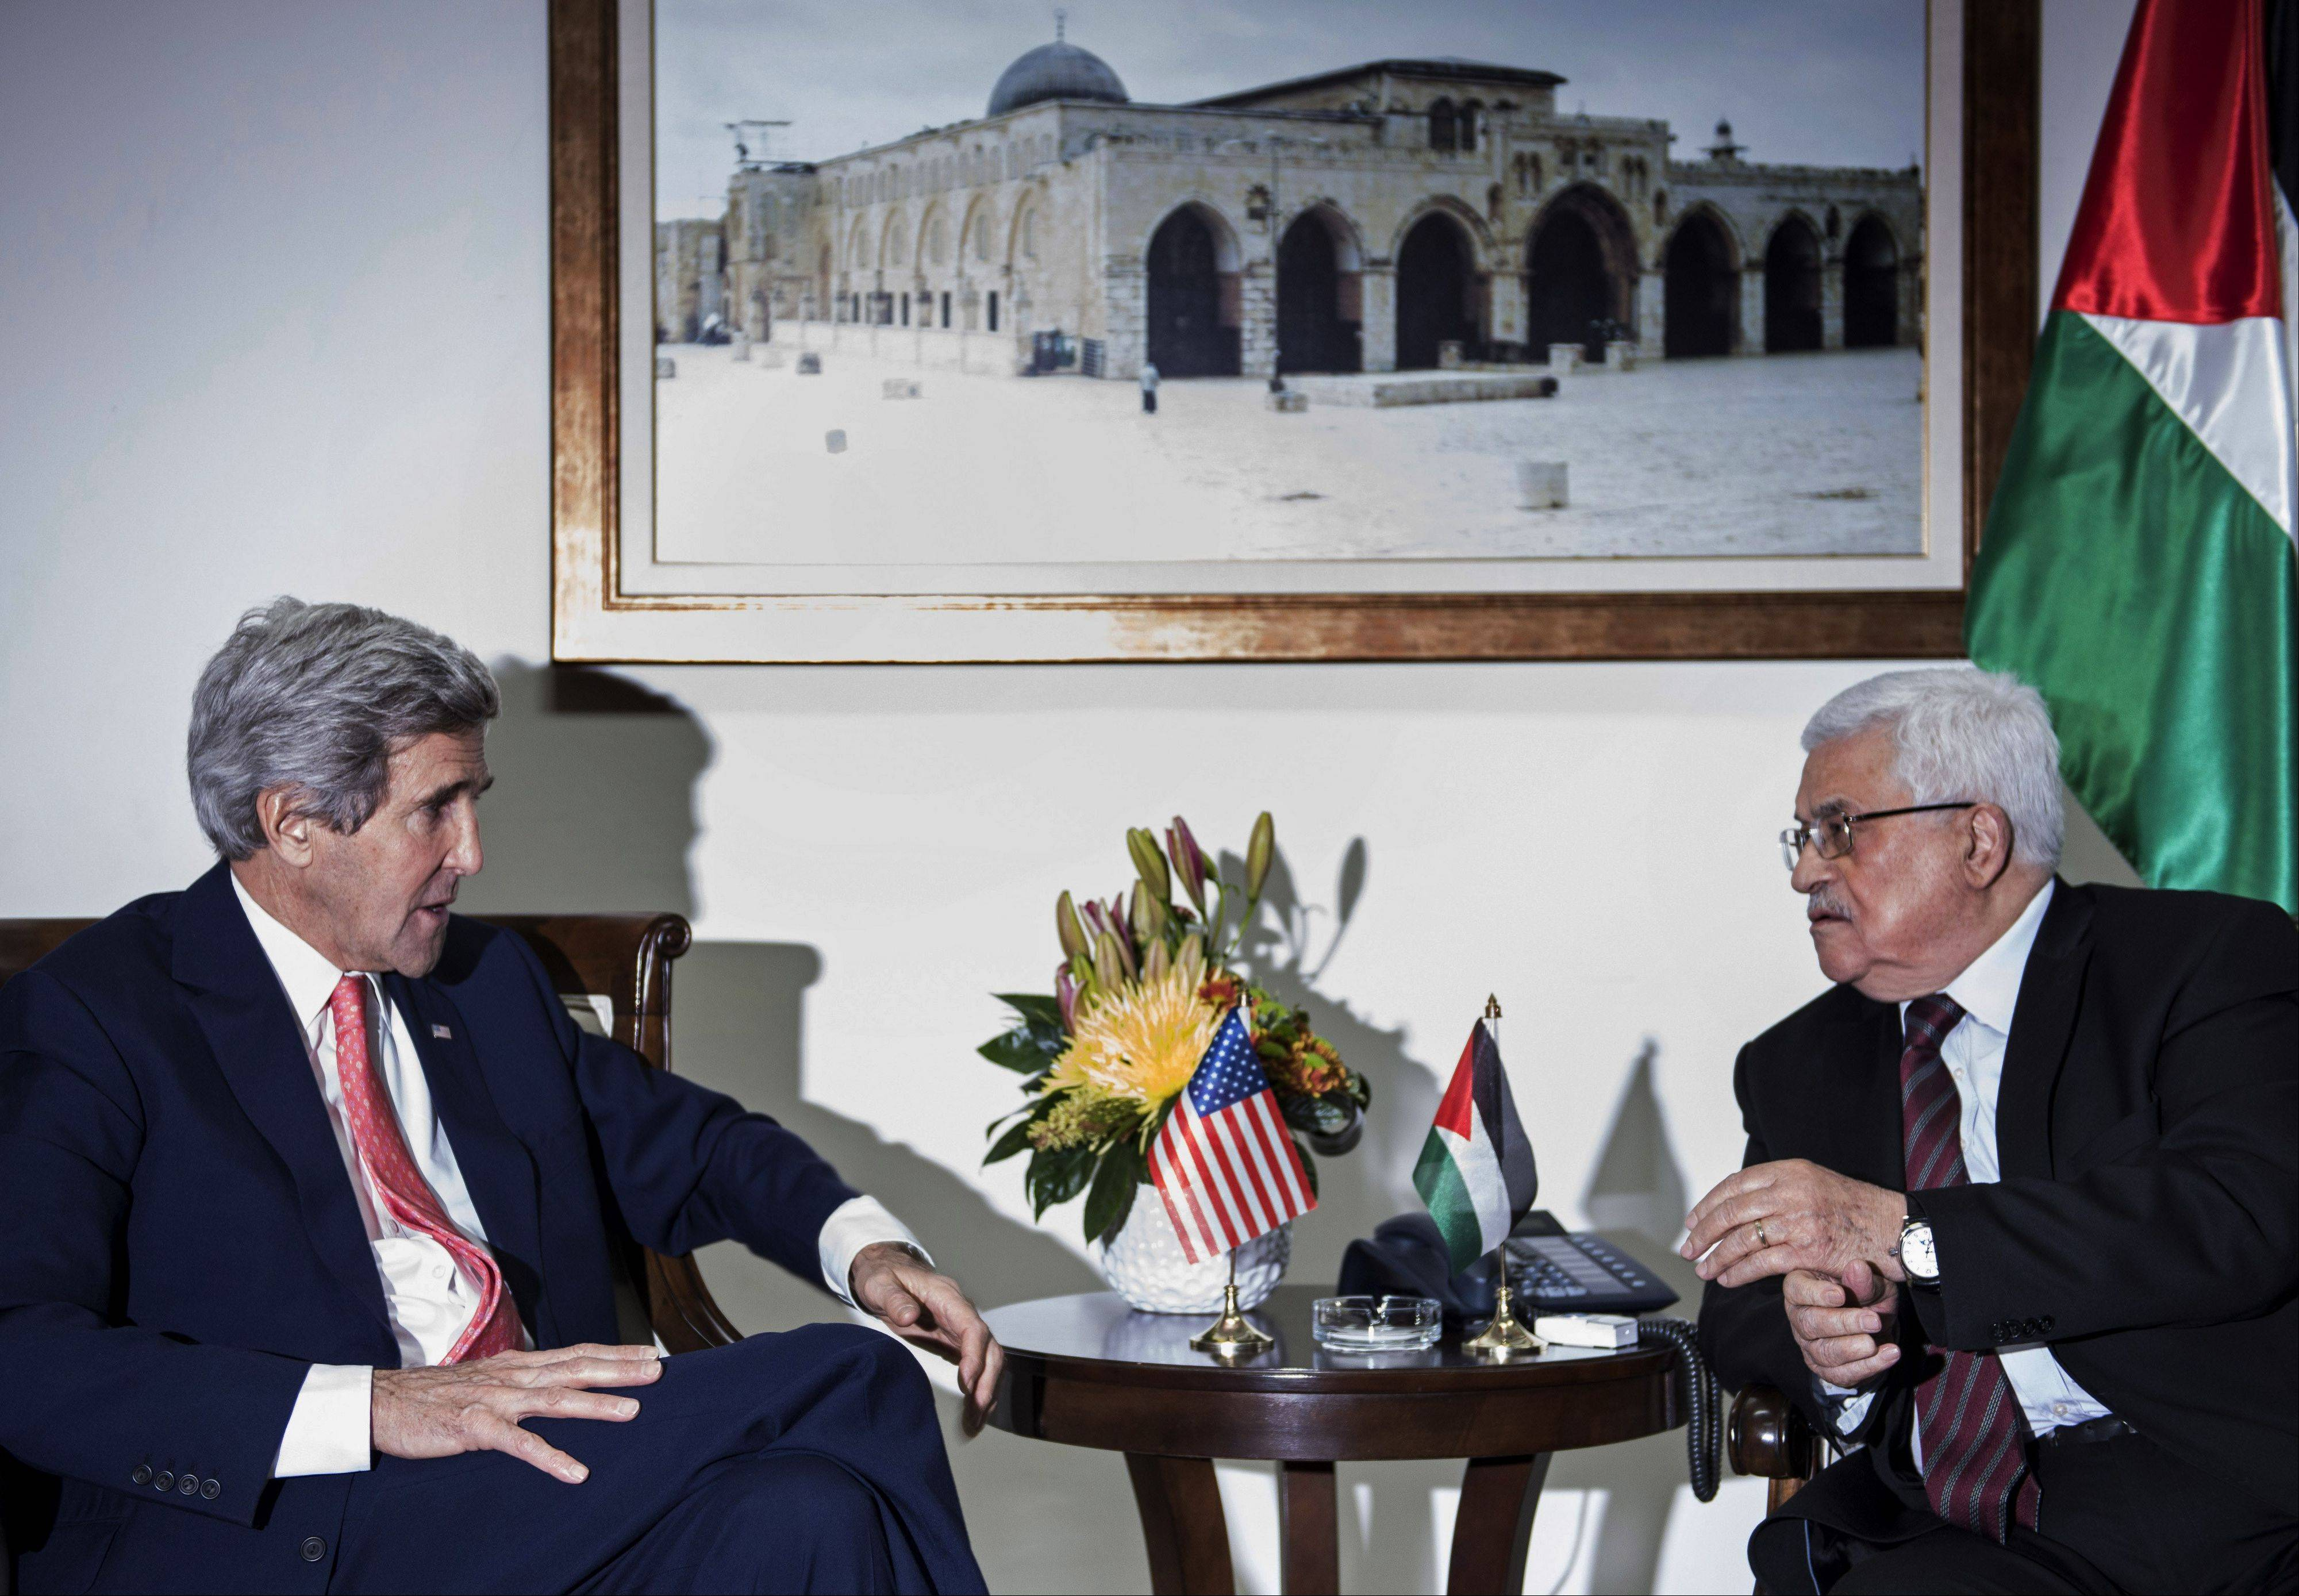 Associated Press U.S. Secretary of State John Kerry, left, and Palestinian President Mahmoud Abbas talk before a meeting at the presidential compound in the West Bank city of Ramallah on Friday, Jan. 3. Kerry took the tenth trip to the region to negotiate a peace deal he claims is �not mission impossible.�